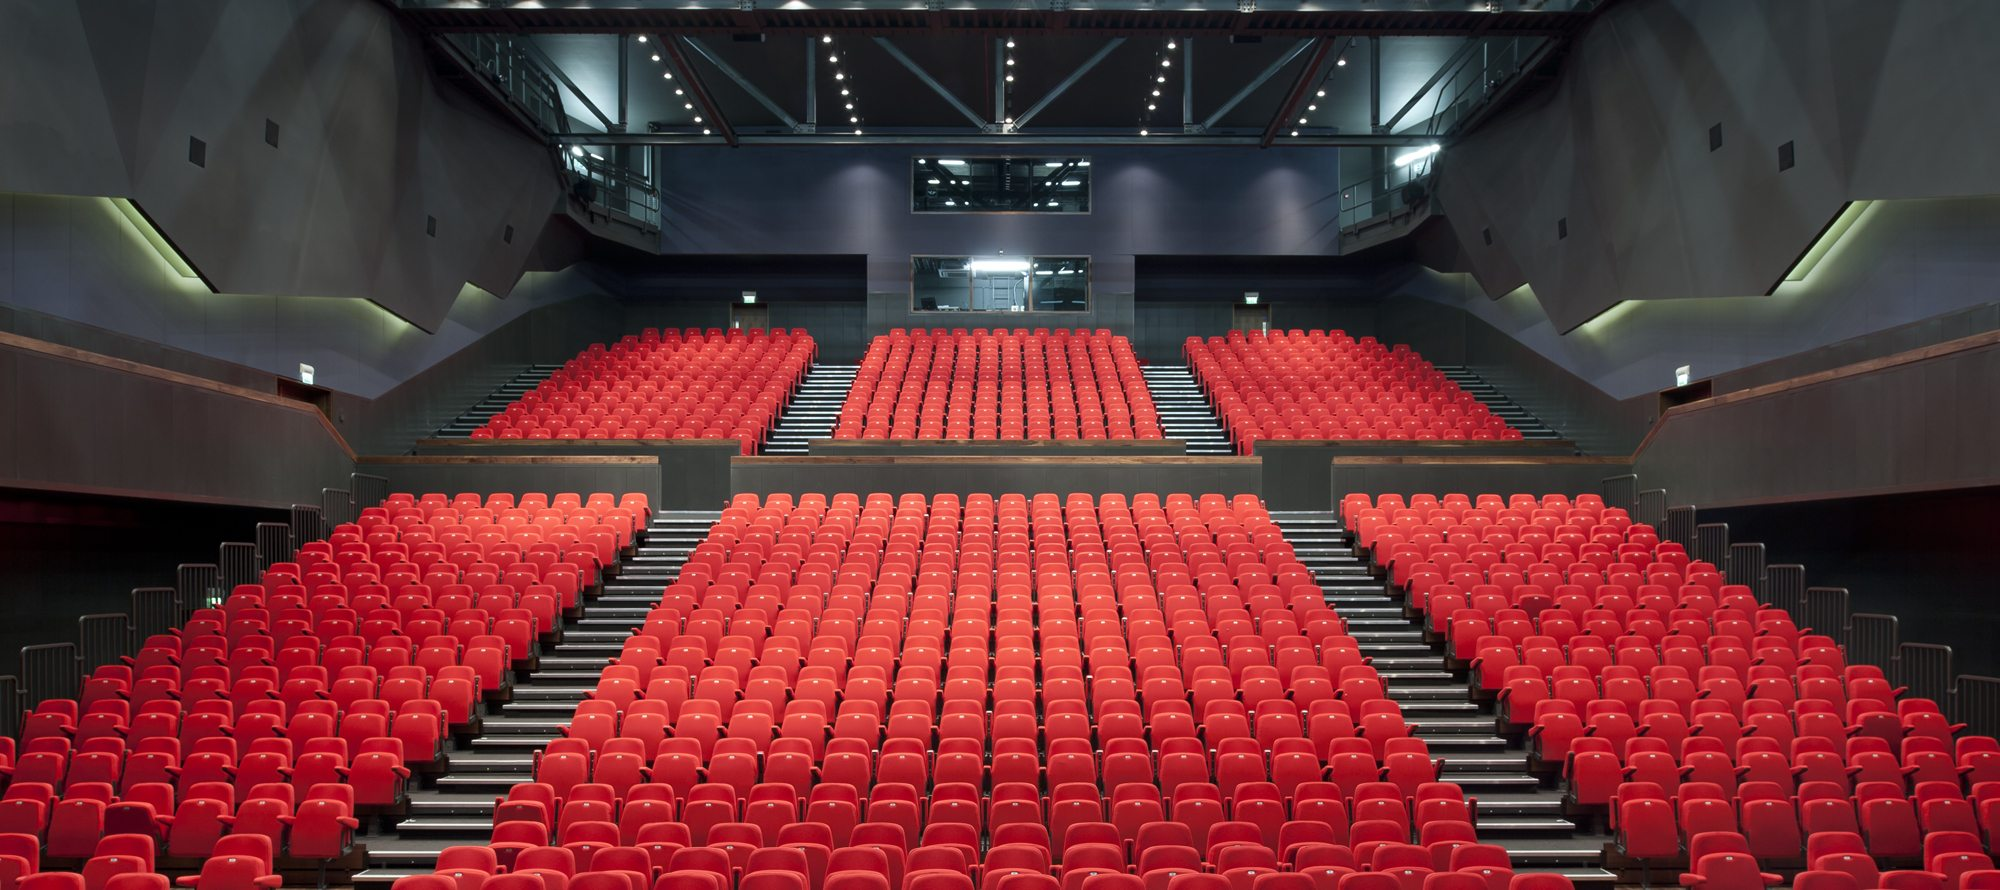 Guildford Civic Concert Hall